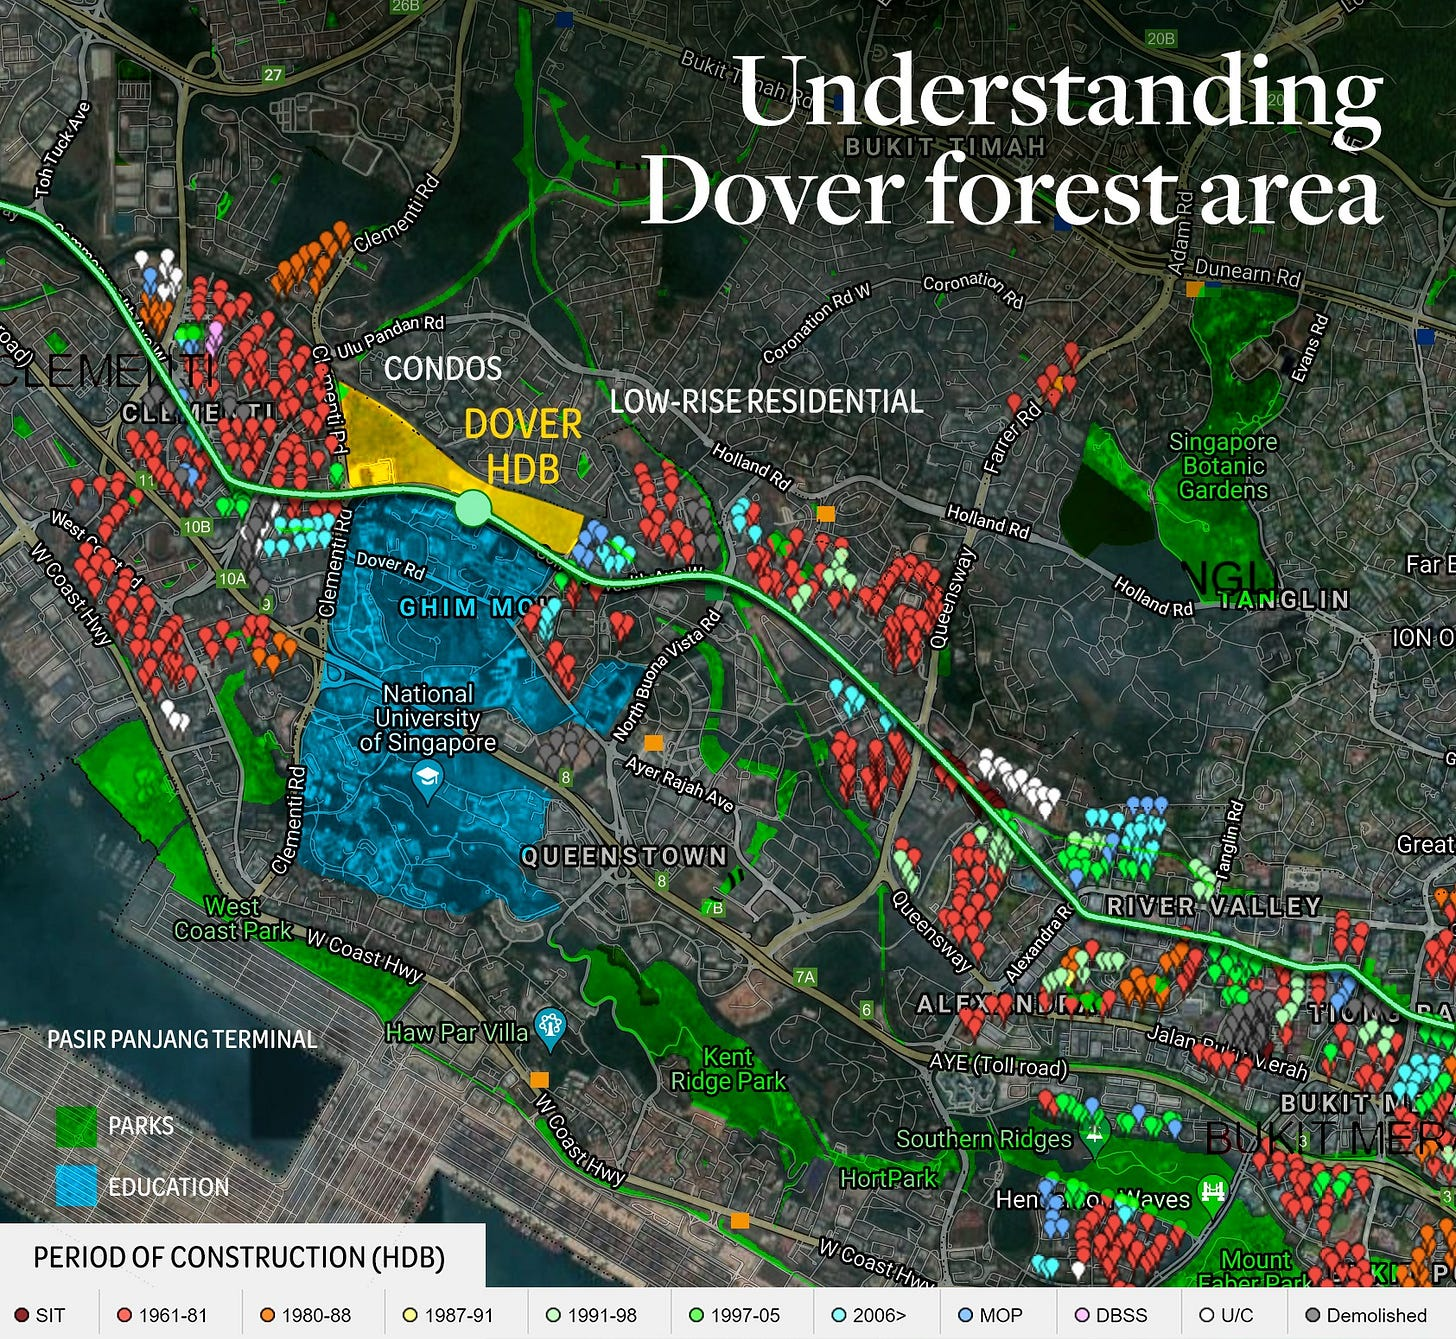 May be an image of map, sky and text that says 'Understanding Dover forest area UluPandan CONDOS DOVER LOW-RISE ERESIDENTIAL HDB Holland Rd GHIMM MC Singapore Botanic Gardens HollandRd National University Singapore Holland Far TANGLIN Ayer Rajah ION QUEENSTOWN අදද PASIRPANJANGTERMINAL Great lPaVll PARKS Queensway RIVERVALLEY Ridge EDUCATION (Toll road) Jalan PERIOD OF CONSTRUCTION (HDB) SIT Merah BUKIT Southe HortPark 1961-81 Ridges 1980-88 • 1987-91 1991-98 1997-05 2006> MOP DBSS OU/C Demolished'